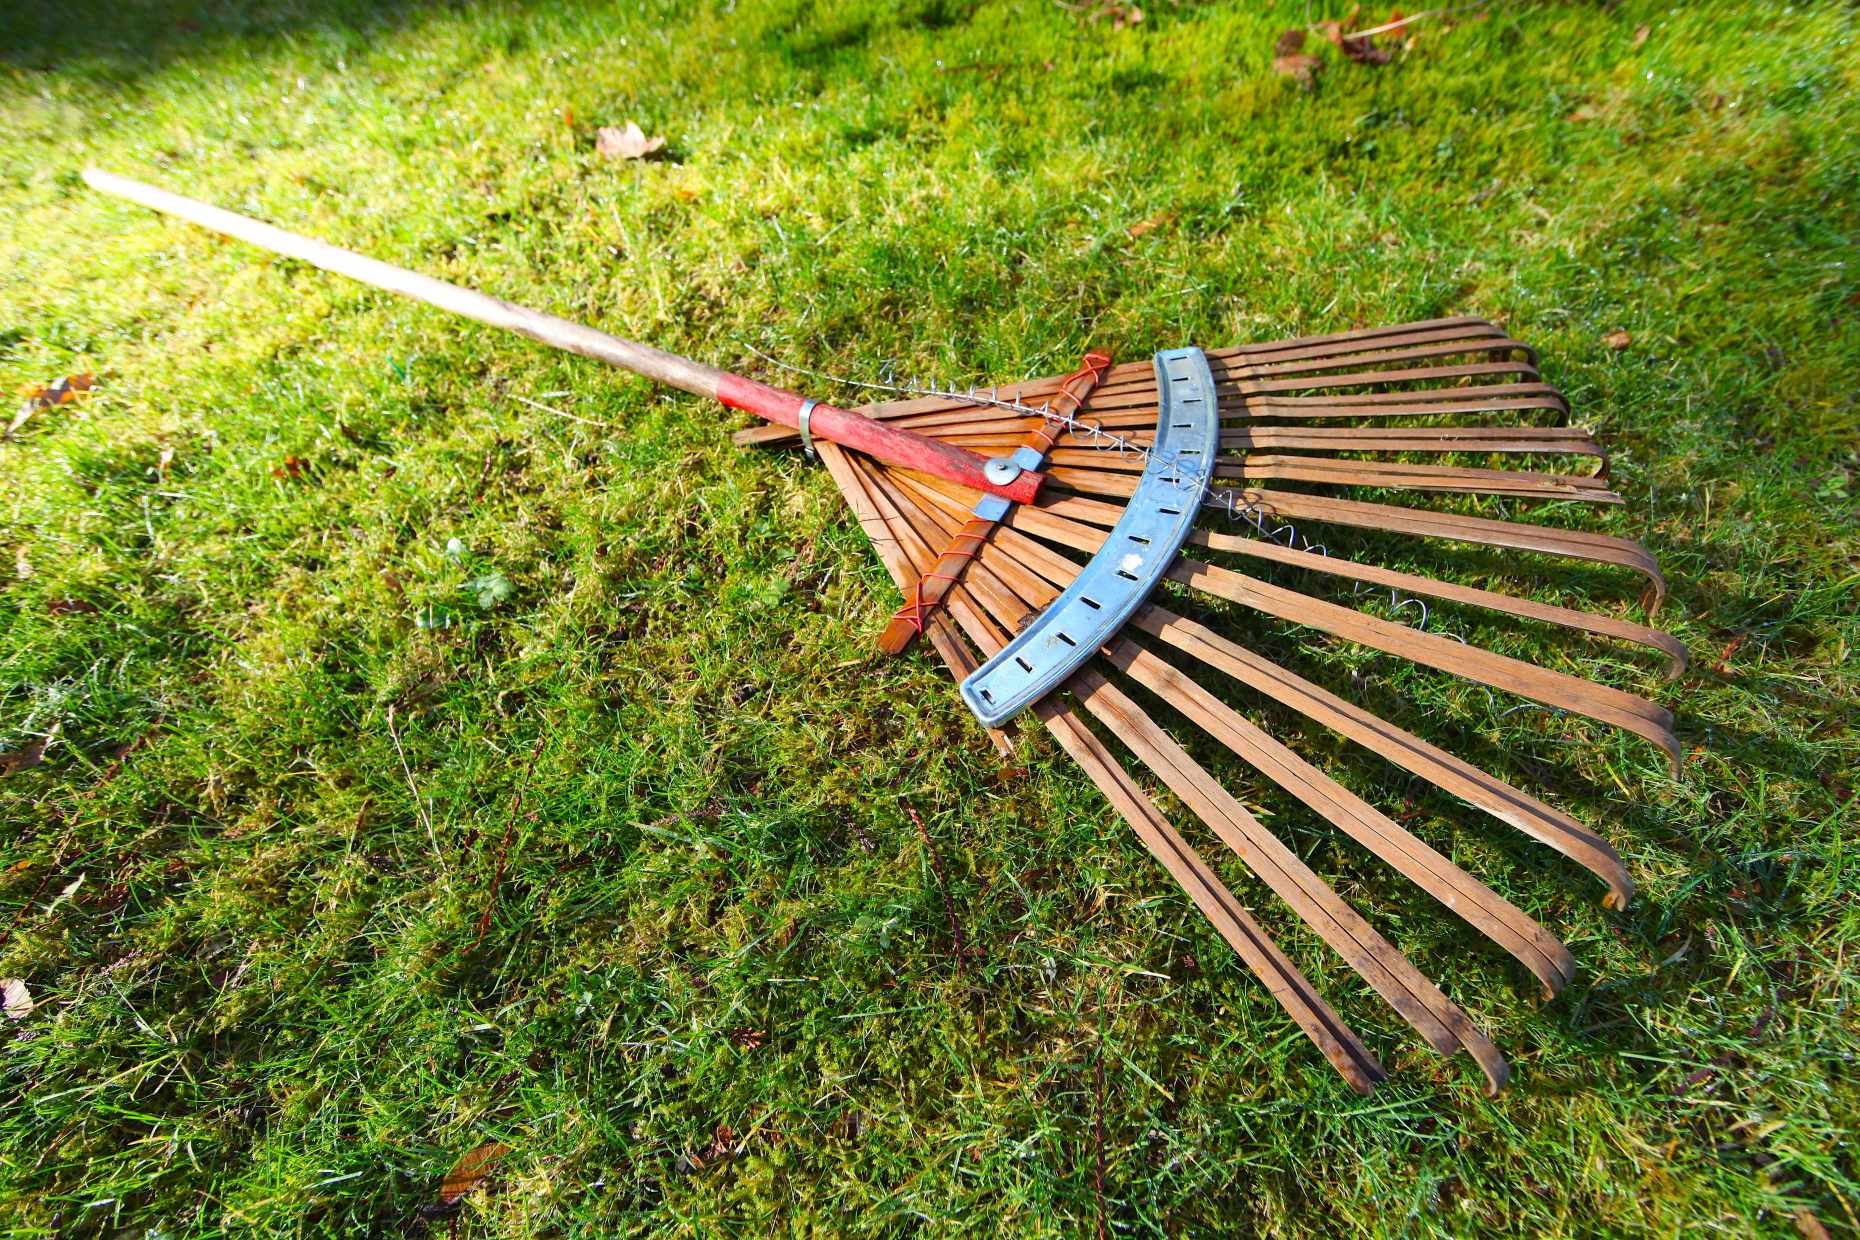 Our zero waste bamboo rake is nearing the end of it's life. Photo © Liesl Clark